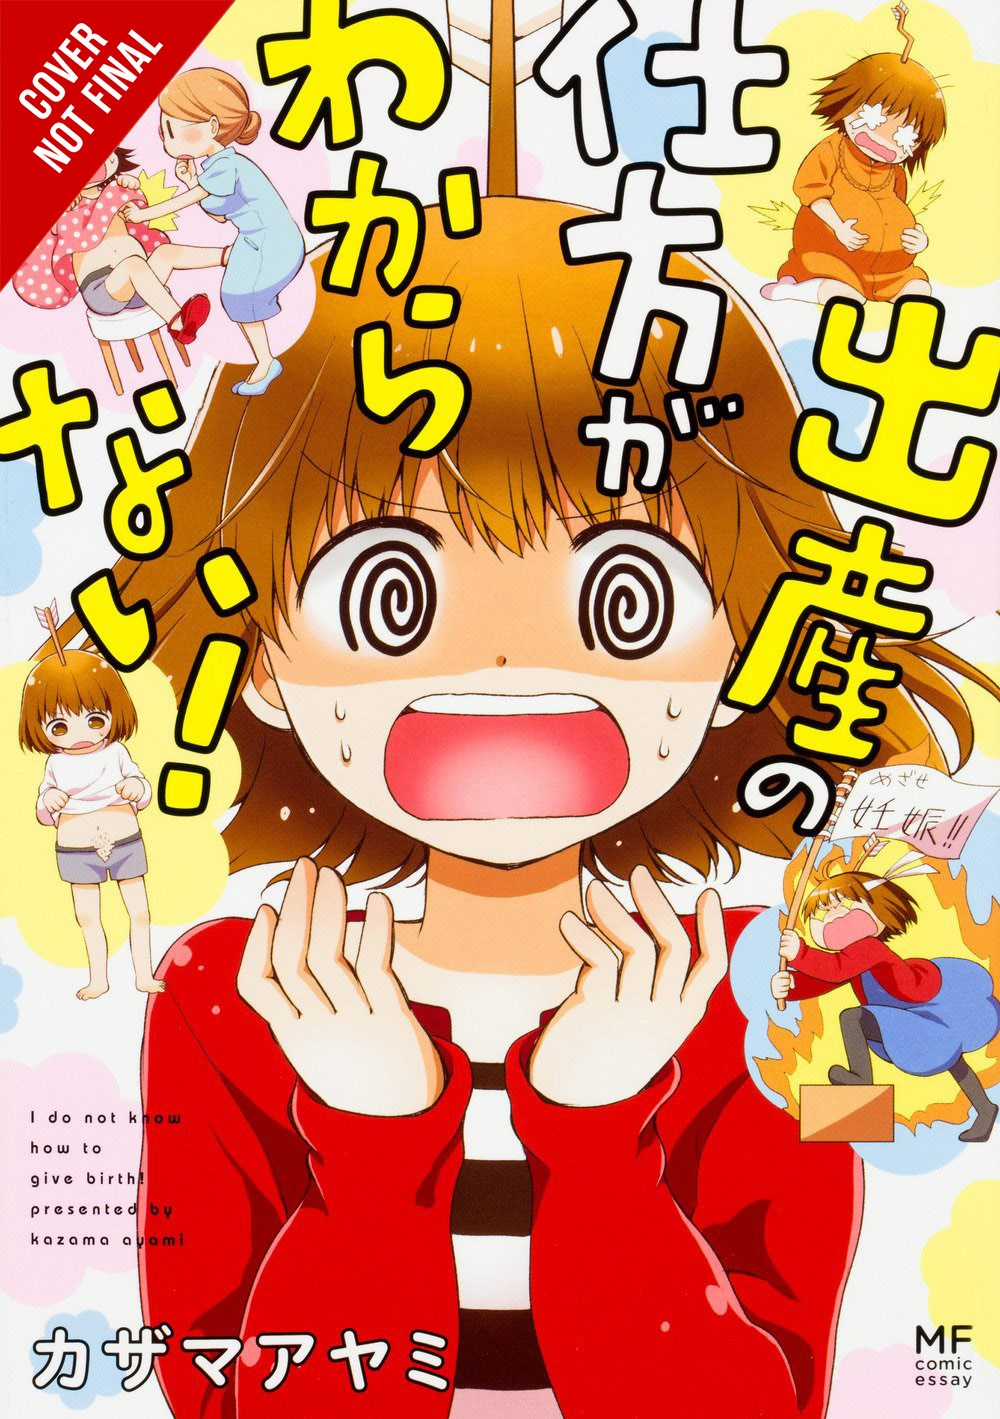 I Dont Know How to Give Birth! Manga